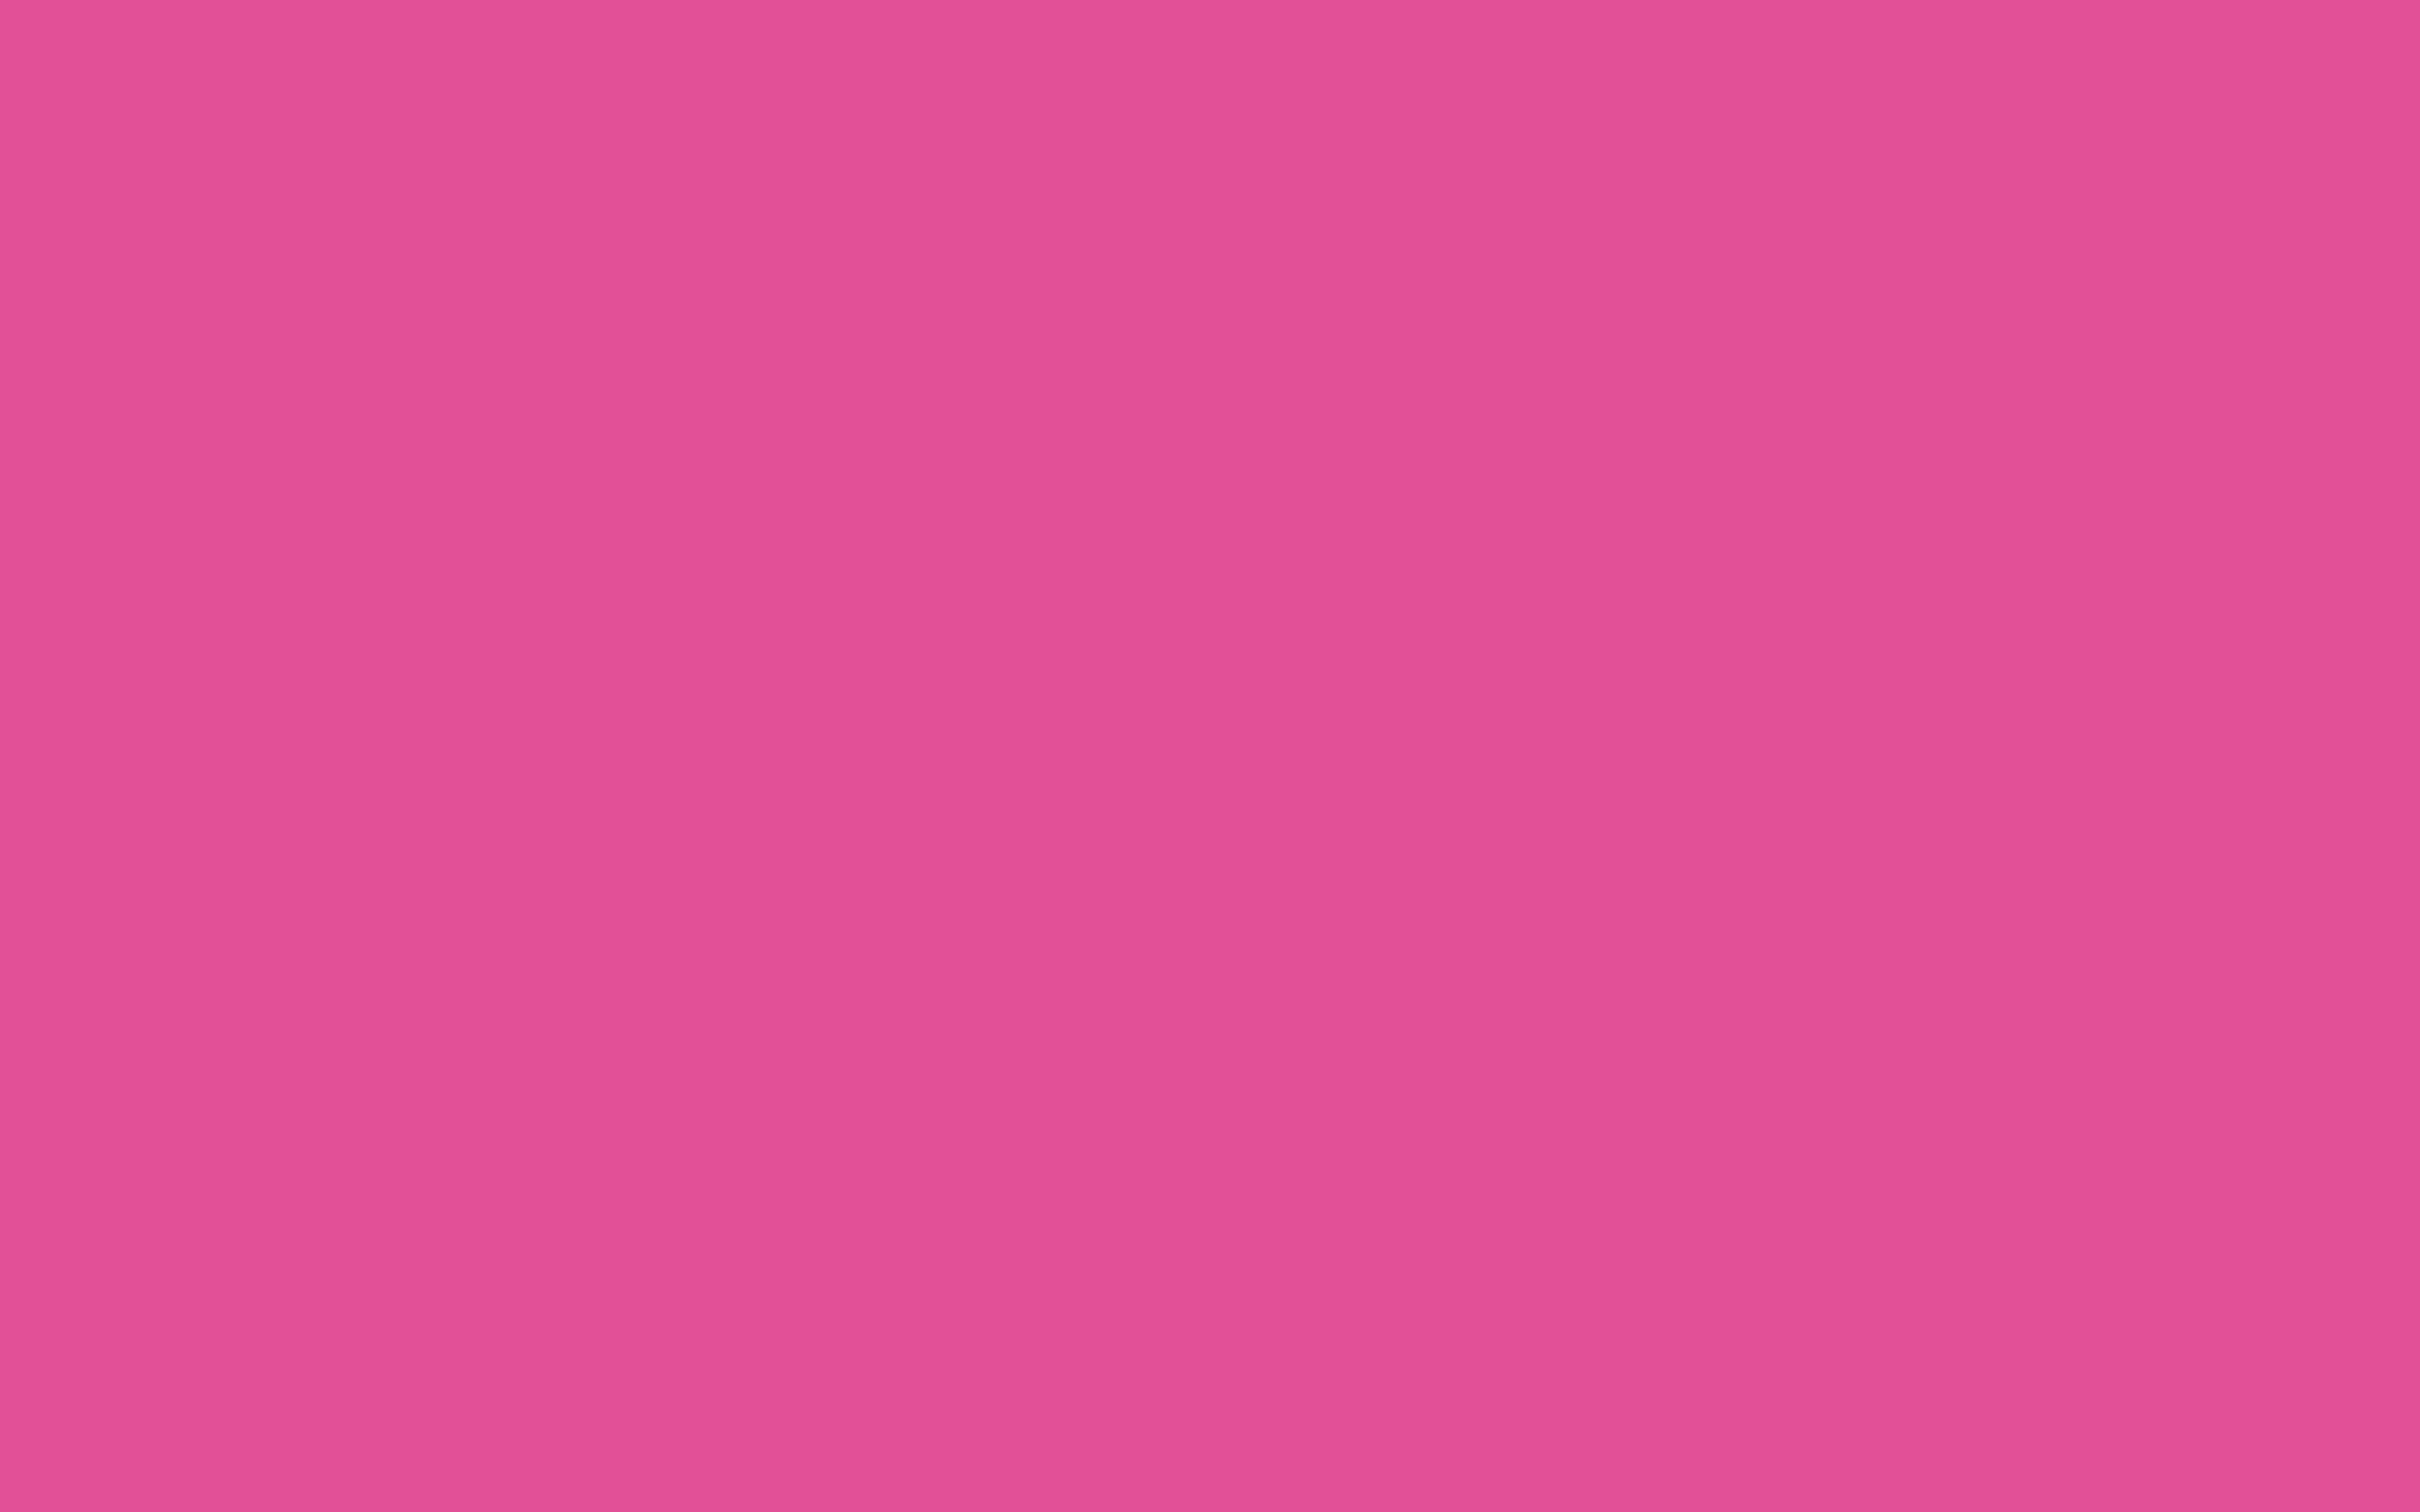 2880x1800 Raspberry Pink Solid Color Background